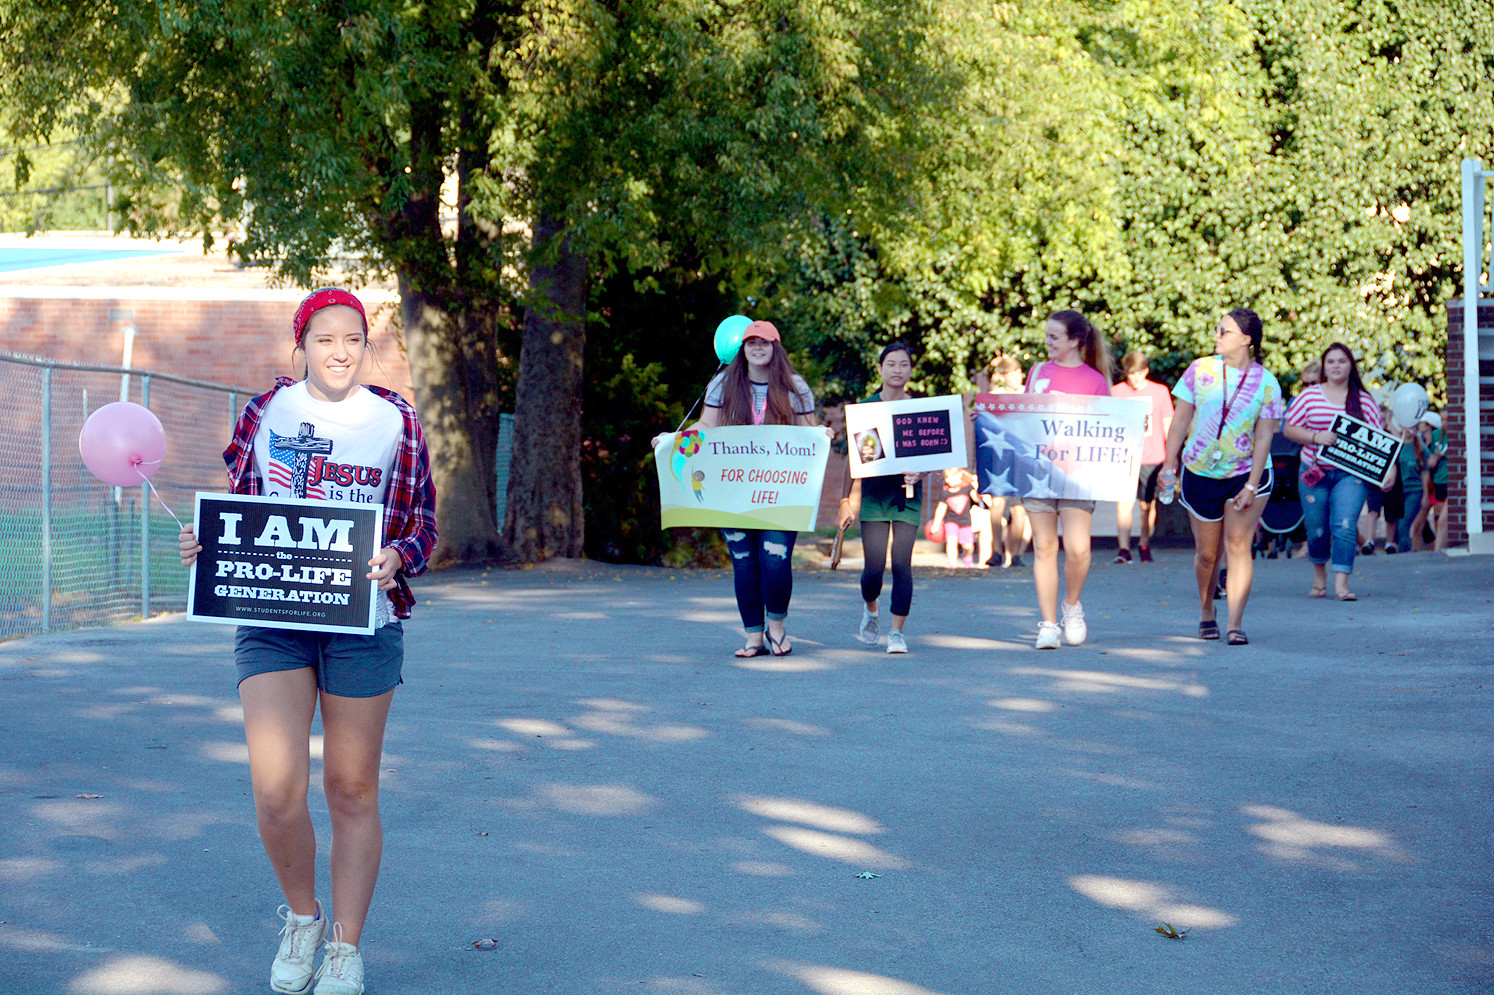 RESIDENTS OF CLEVELAND and beyond participate in 2017's Walk for Life. The event is a fundraiser for New Hope Pregnancy Care Center in Cleveland, and also an awareness campaign for the pro-life organization.